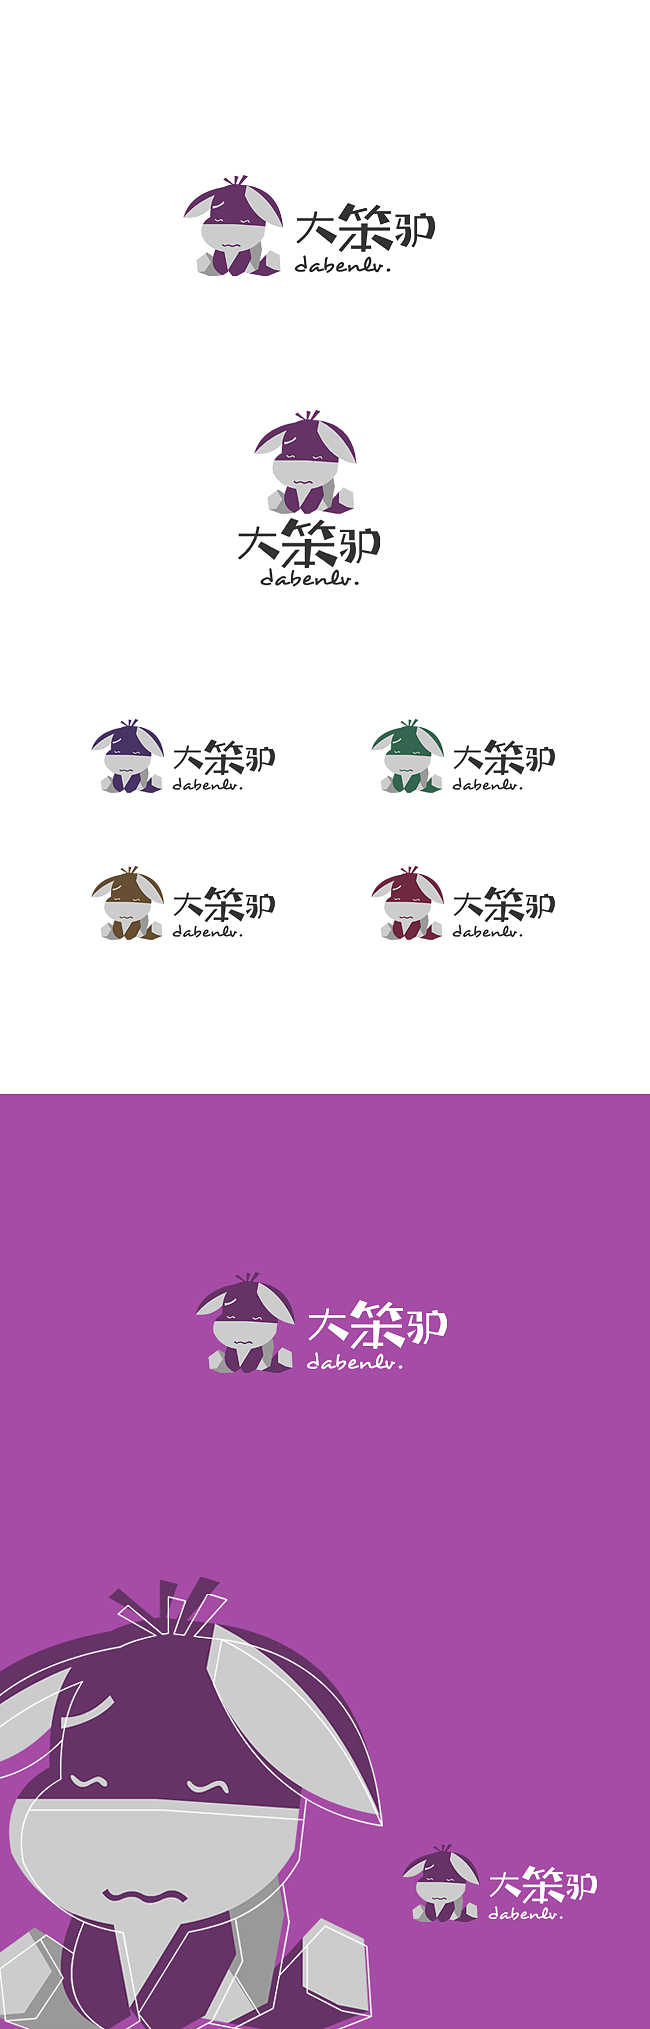 chinesefontdesign.com 2016 07 16 19 38 35 60+ Amazing Chinese Font Logos Designers Should See